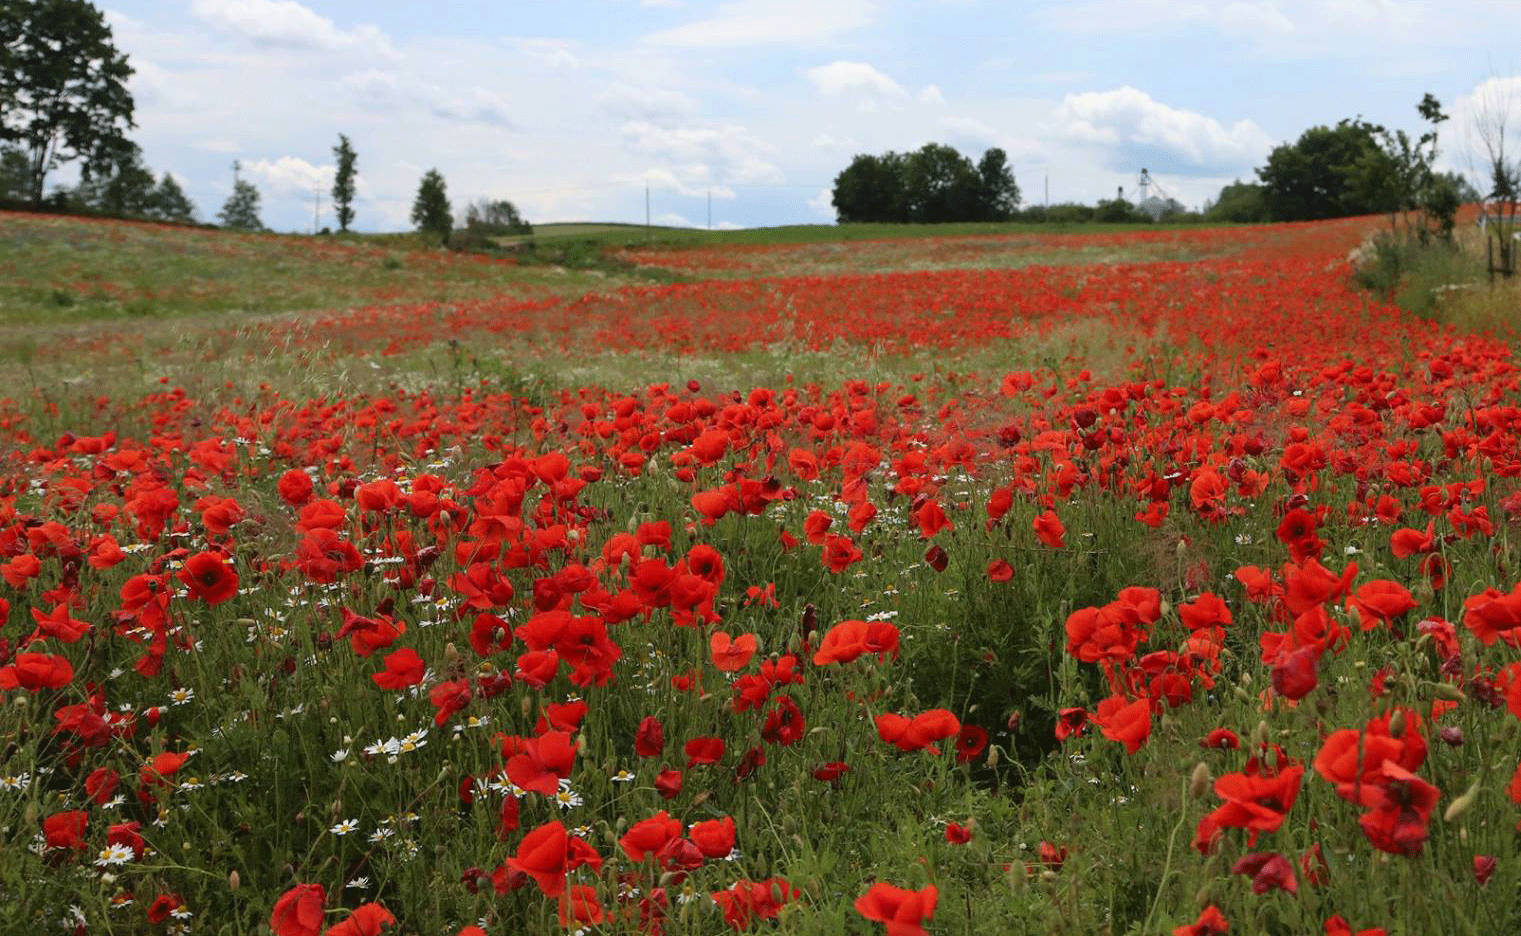 A field of red Polish poppies